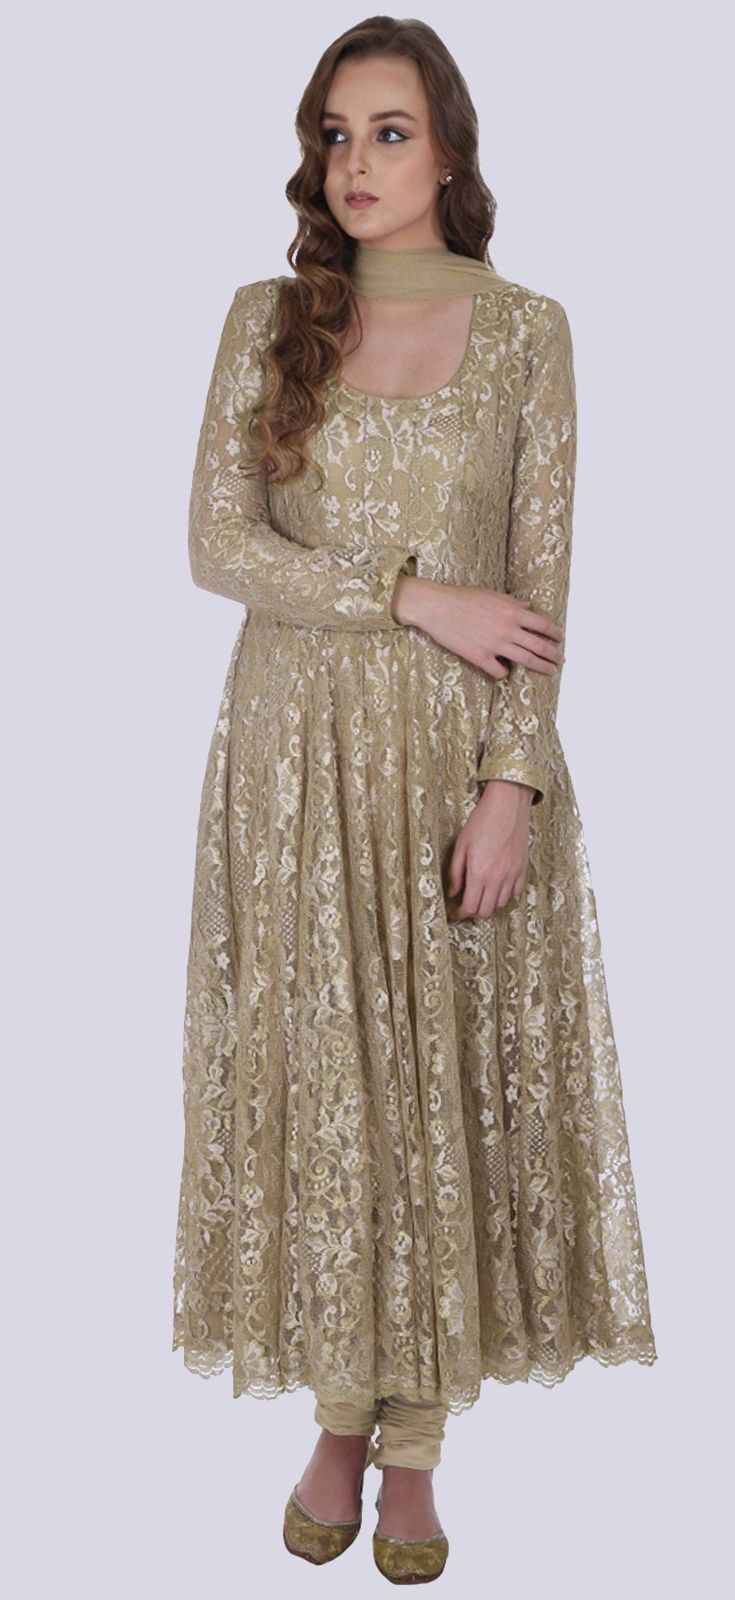 Eid 2017 Collection: Beige-Gold Lace Anarkali Suit With Dupatta